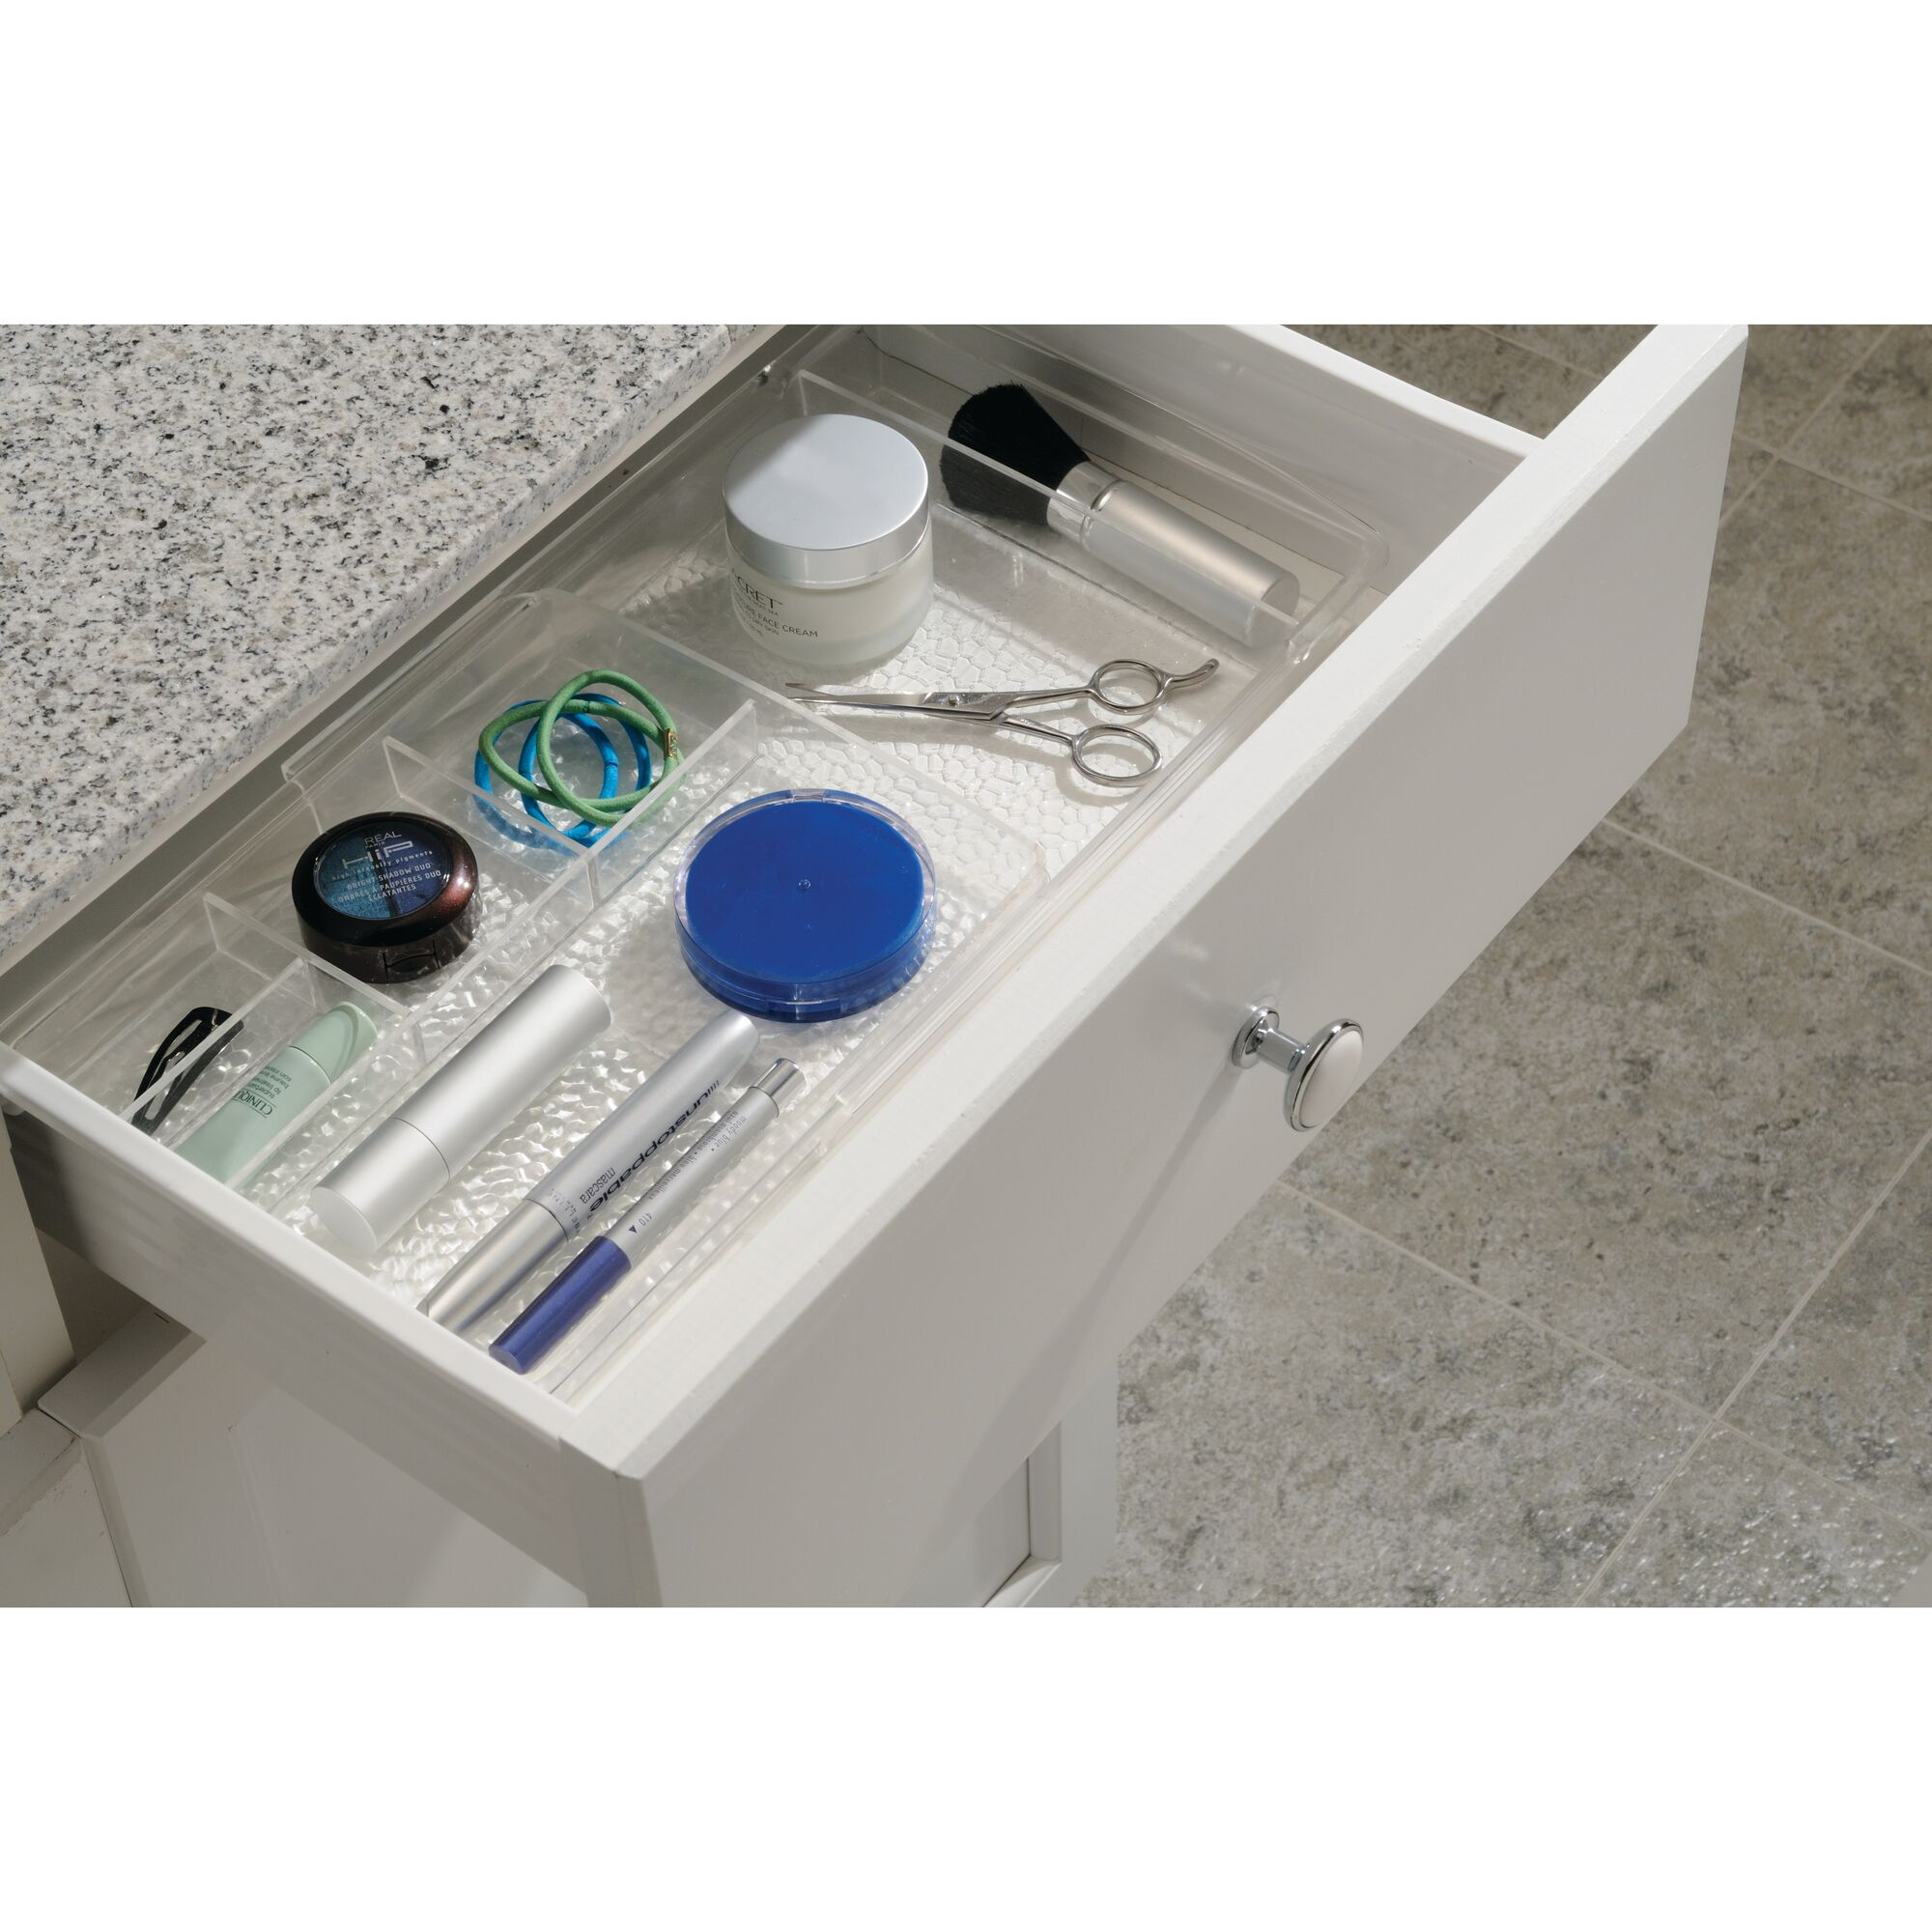 mDesign-Expandable-Makeup-Organizer-Tray-for-Bathroom-Drawers thumbnail 14